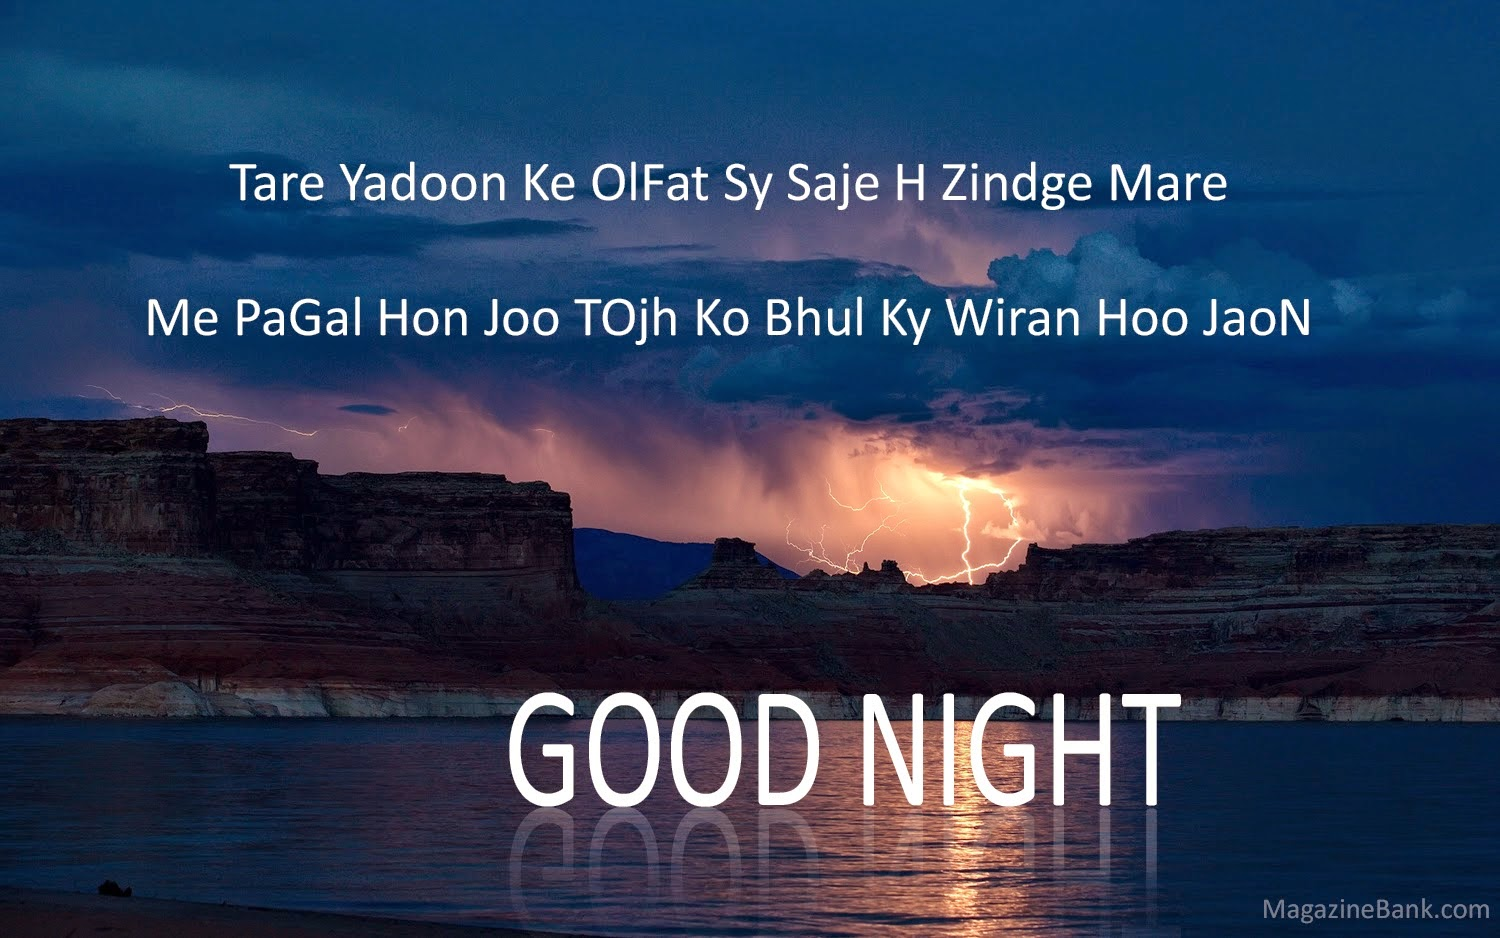 Greetings and wishes good night sweet dreams good night sweet dreams m4hsunfo